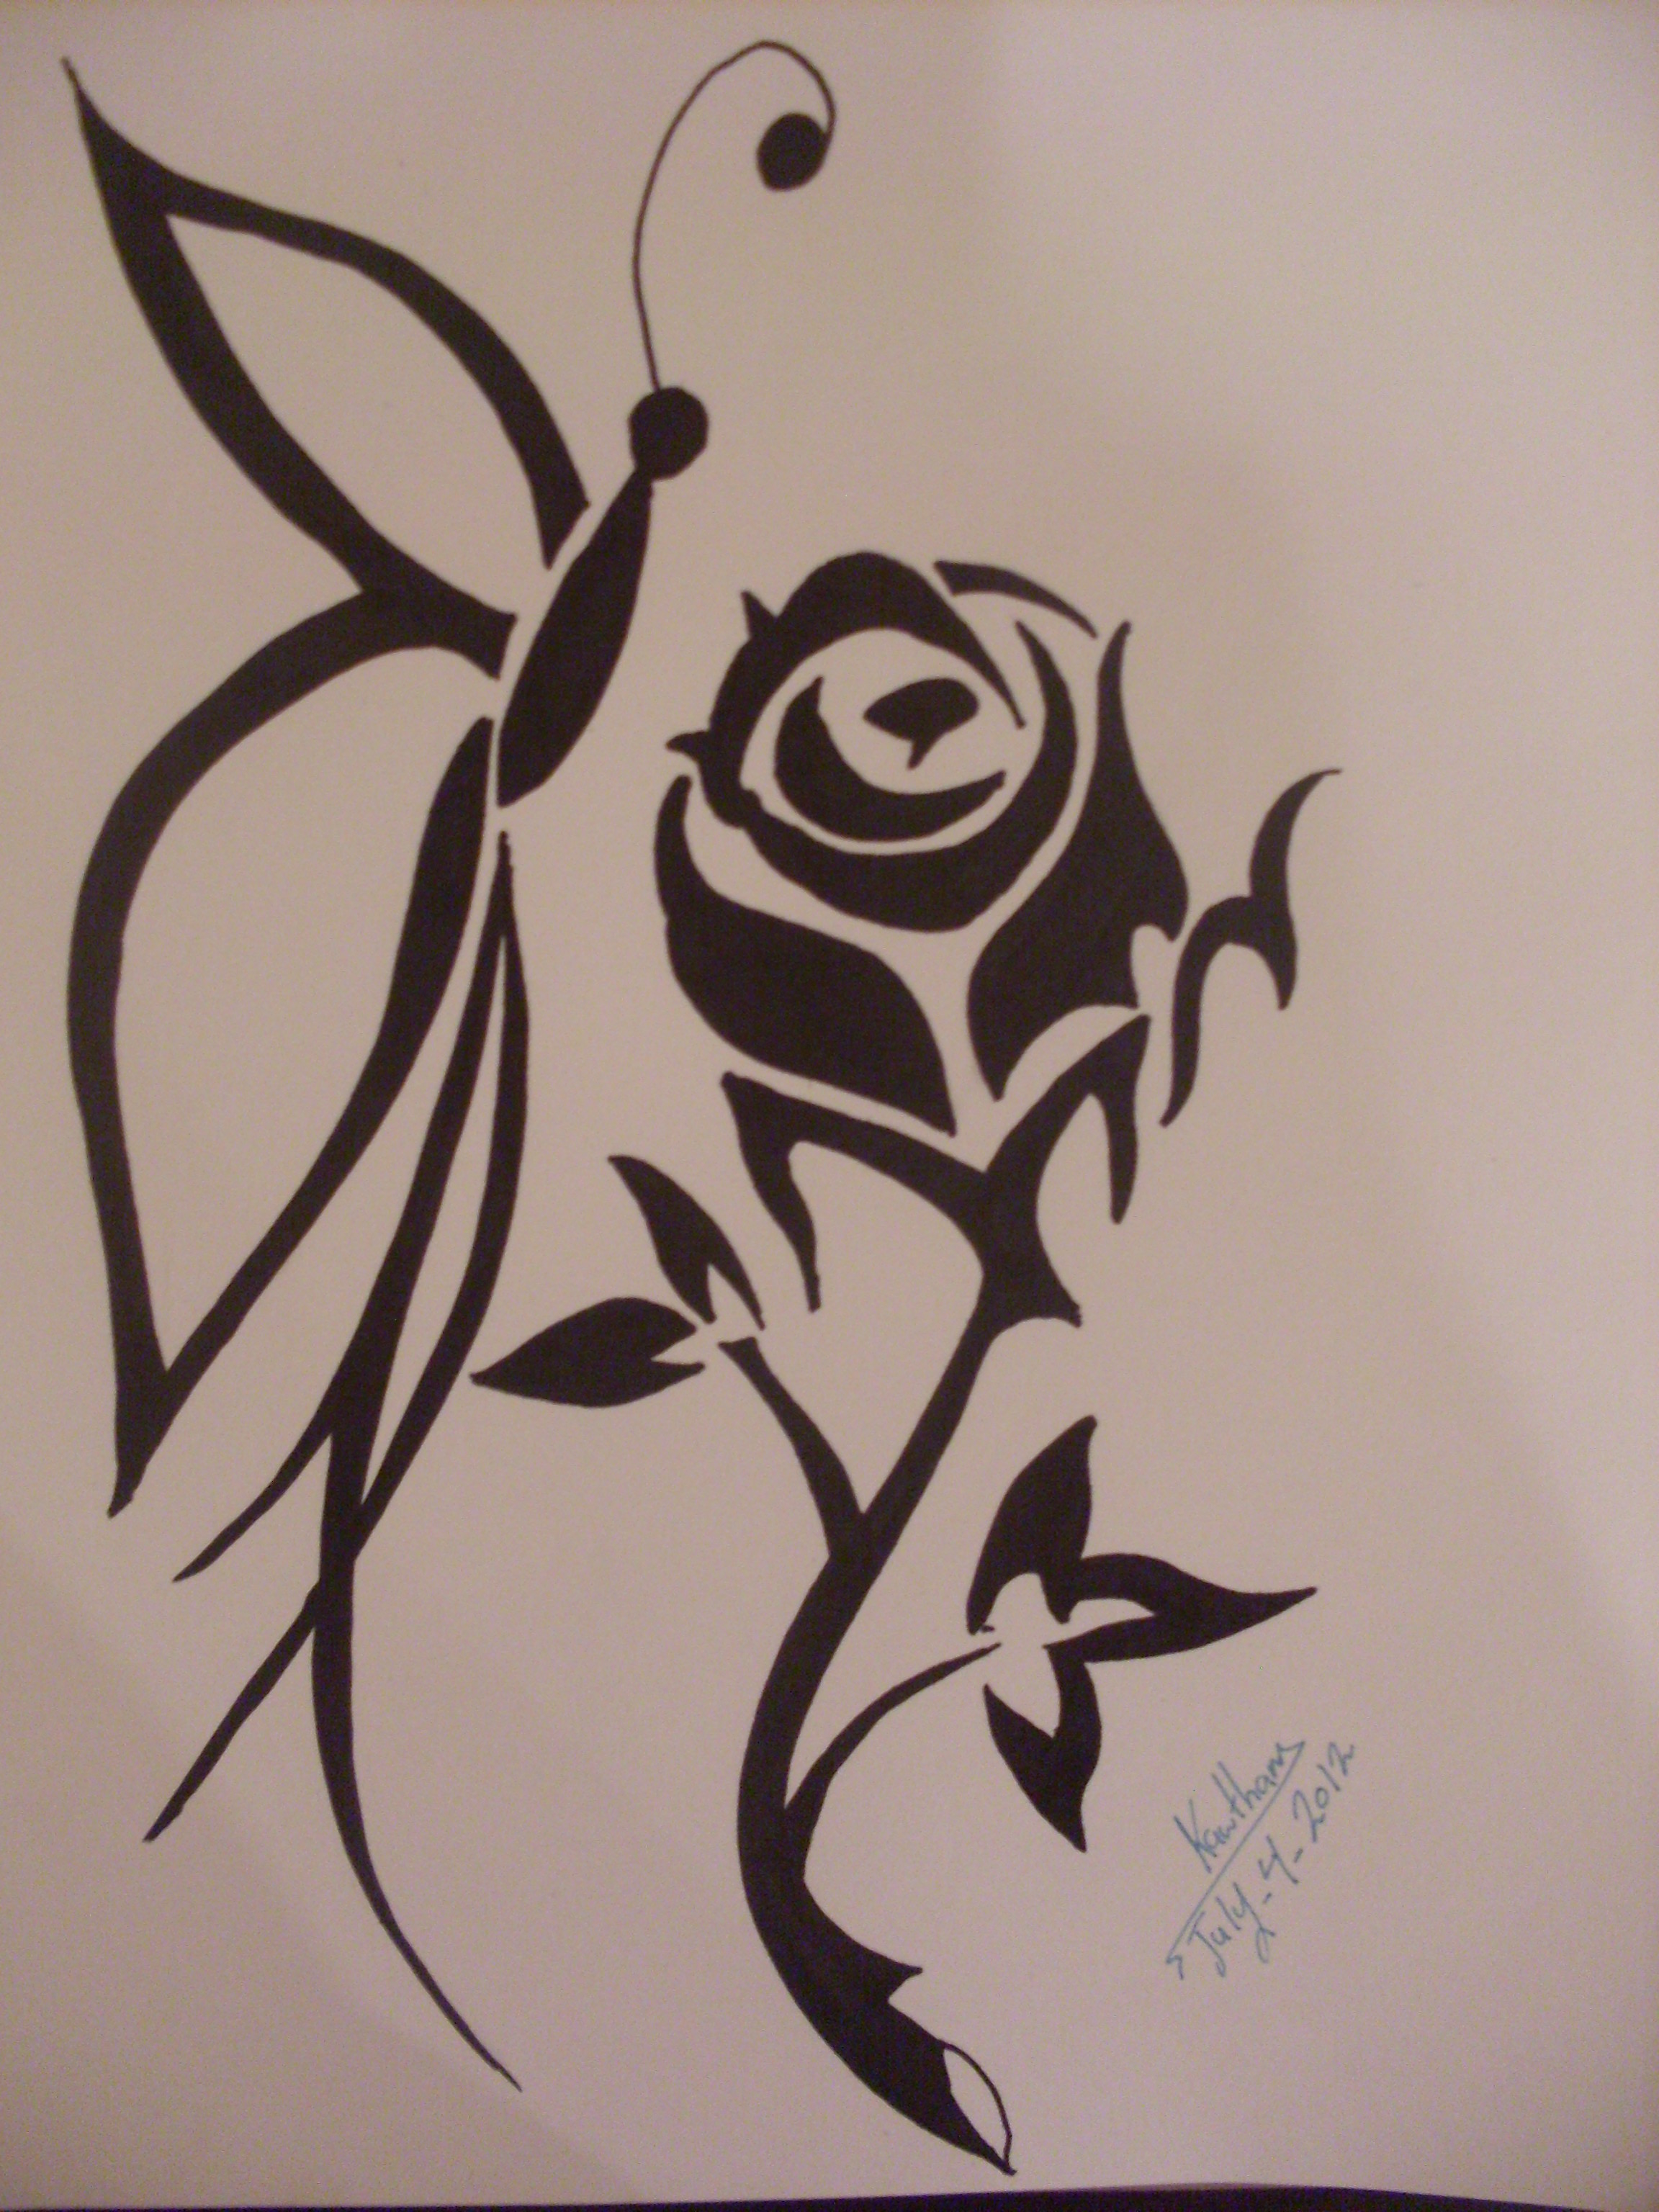 Drawn rose grafitti Drawing on Clip And 2015